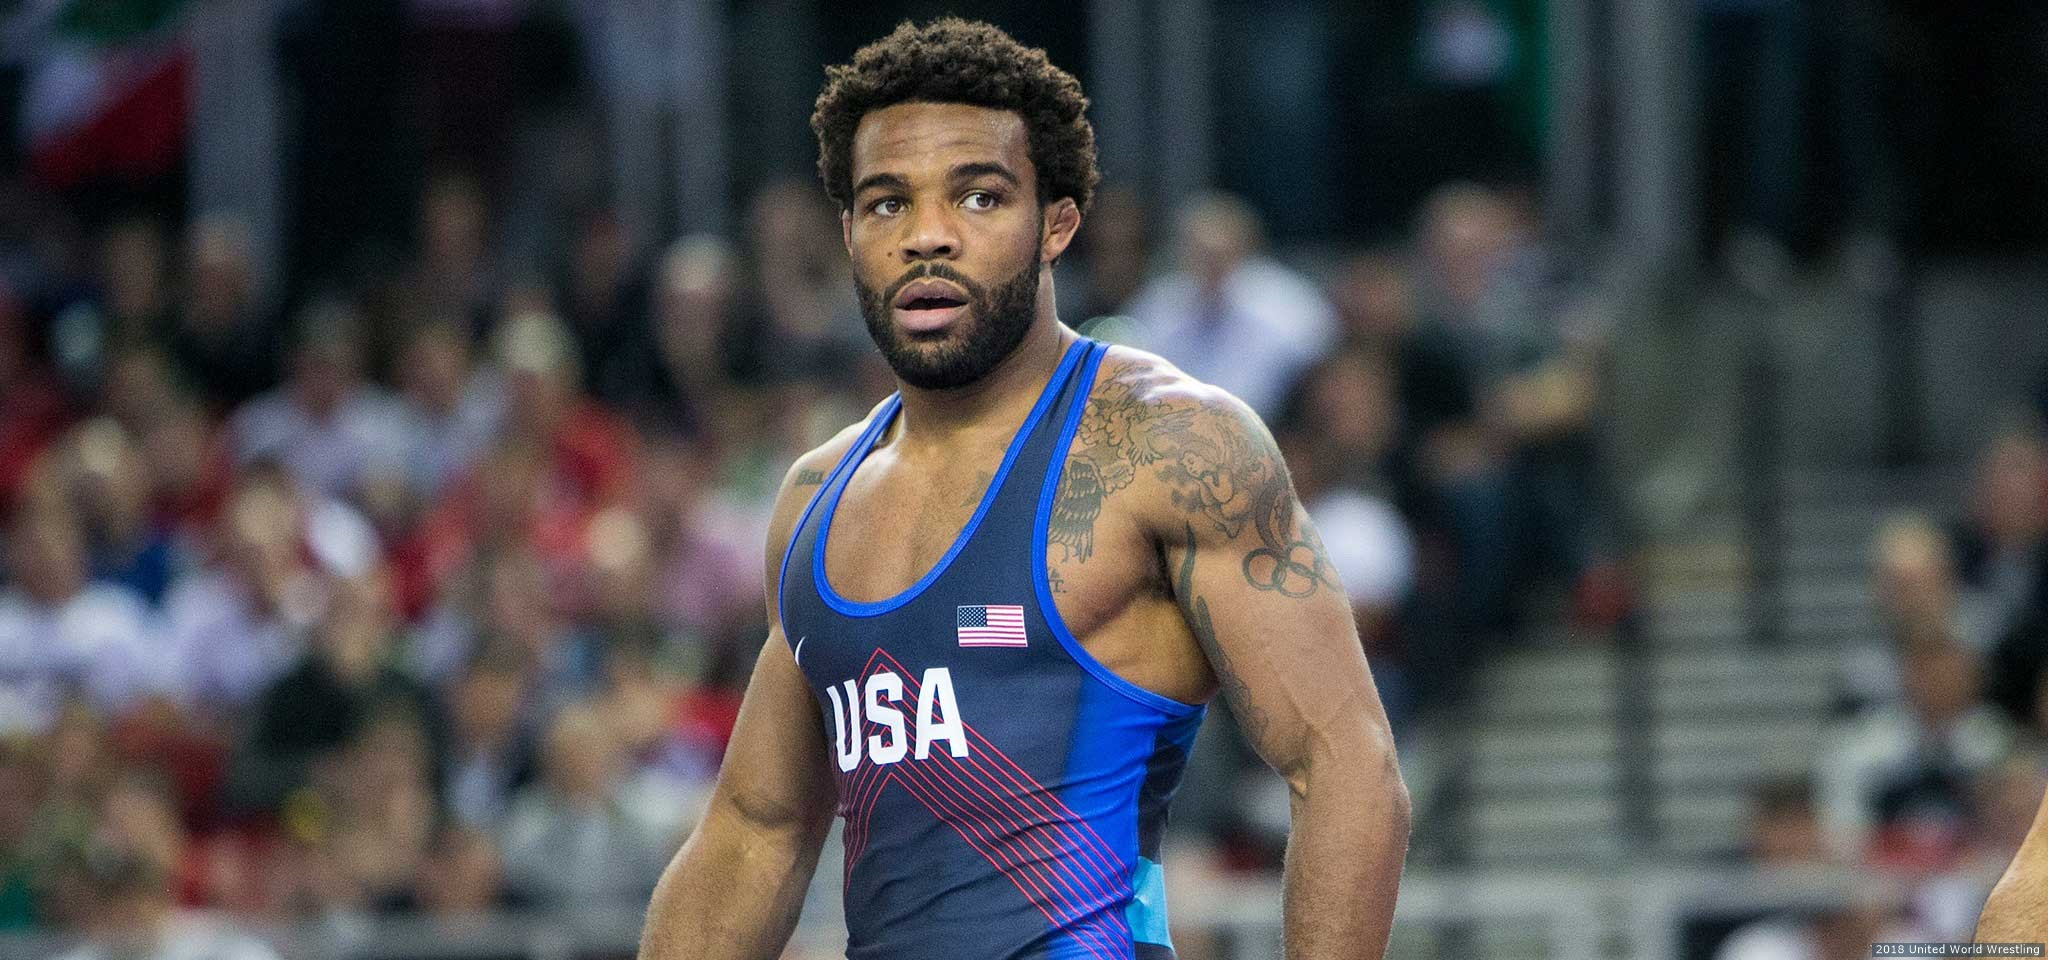 43e148f21fc Burroughs, 30, faced off against Italy's Frank Chamizo, the two-time world  champion and Olympic bronze medalist, for the third time this year in  Sunday's ...